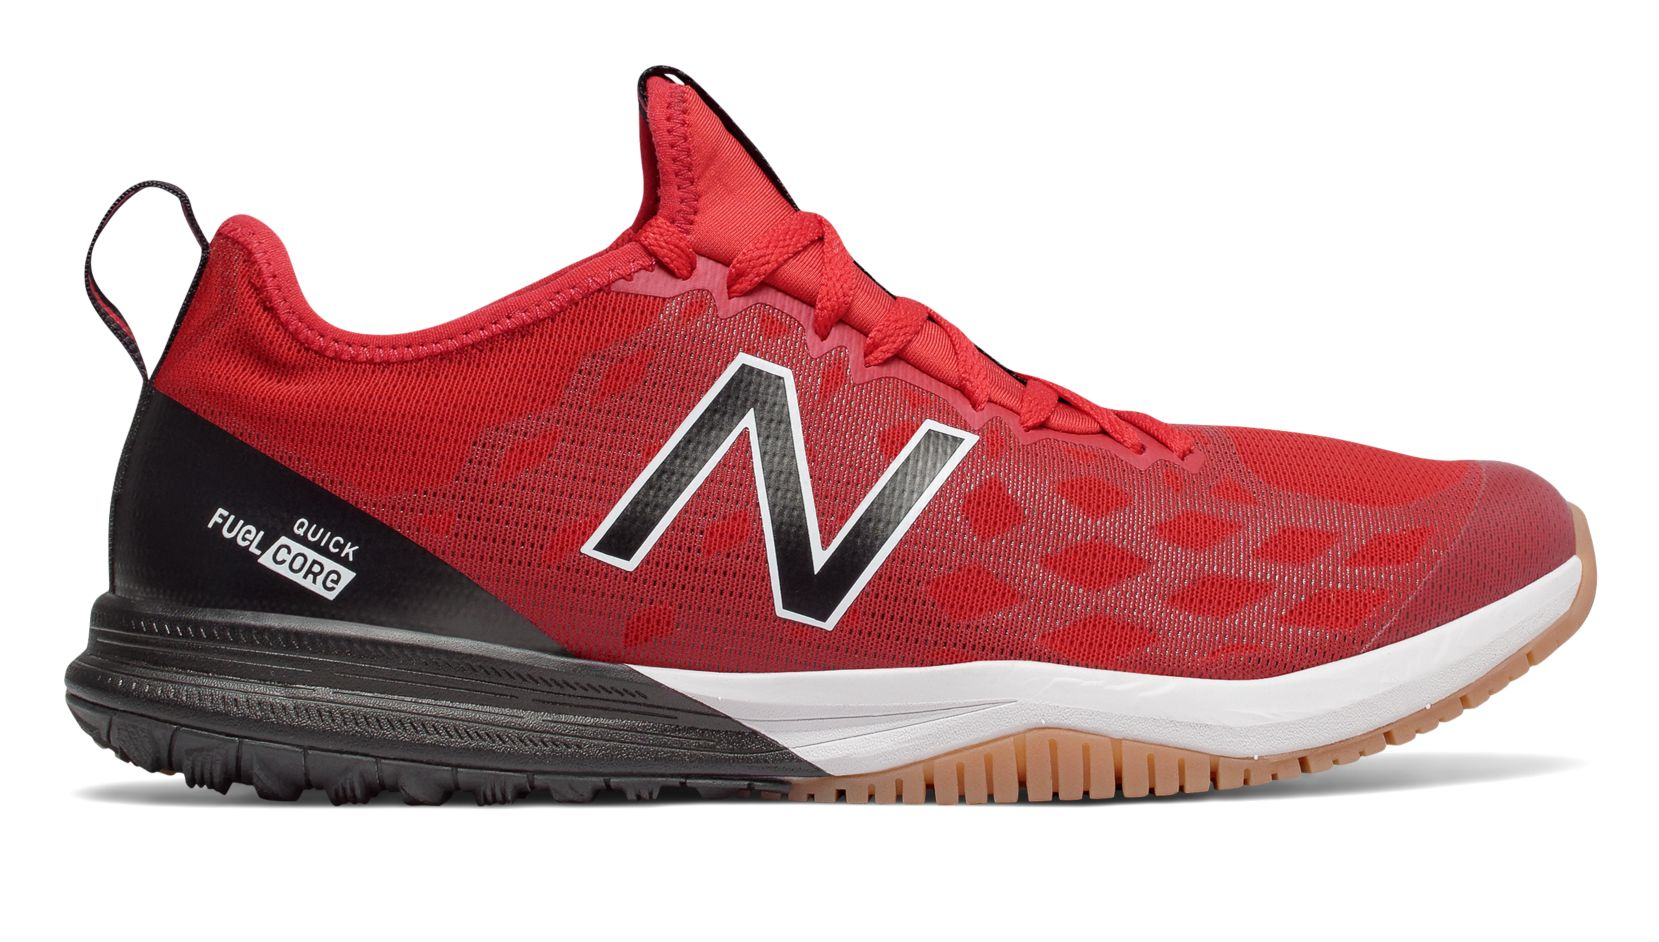 New Balance FuelCore Quick V3 Trainer